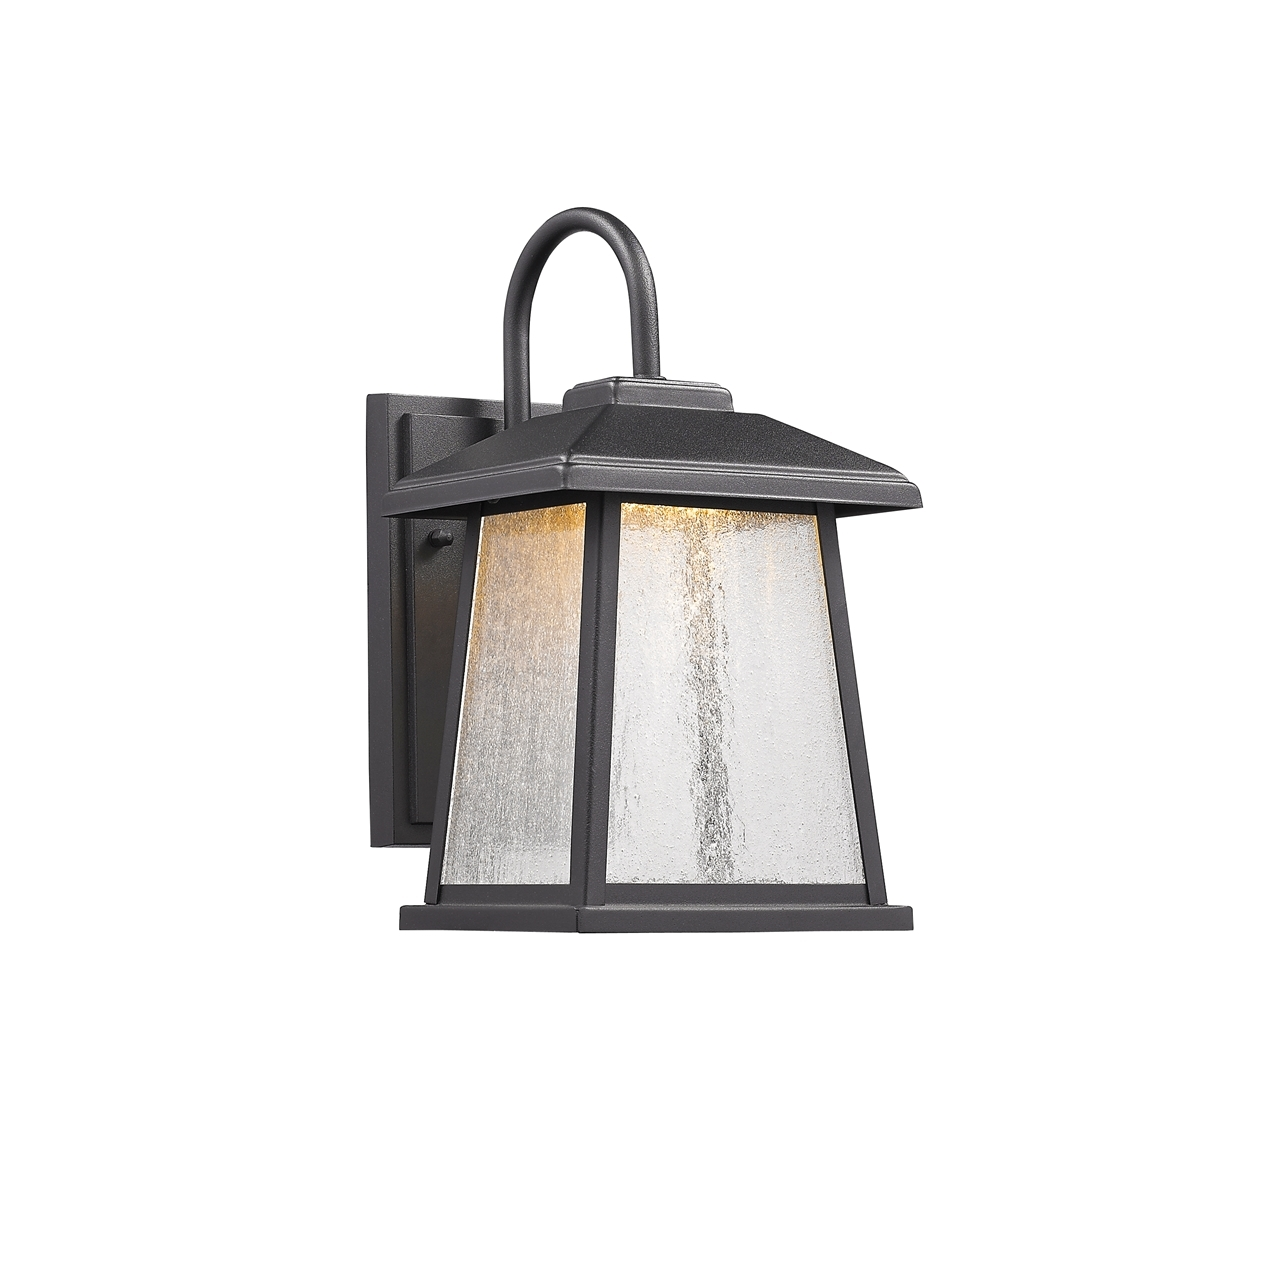 Picture Of CH22L51BK12 OD1 LED Outdoor Sconce